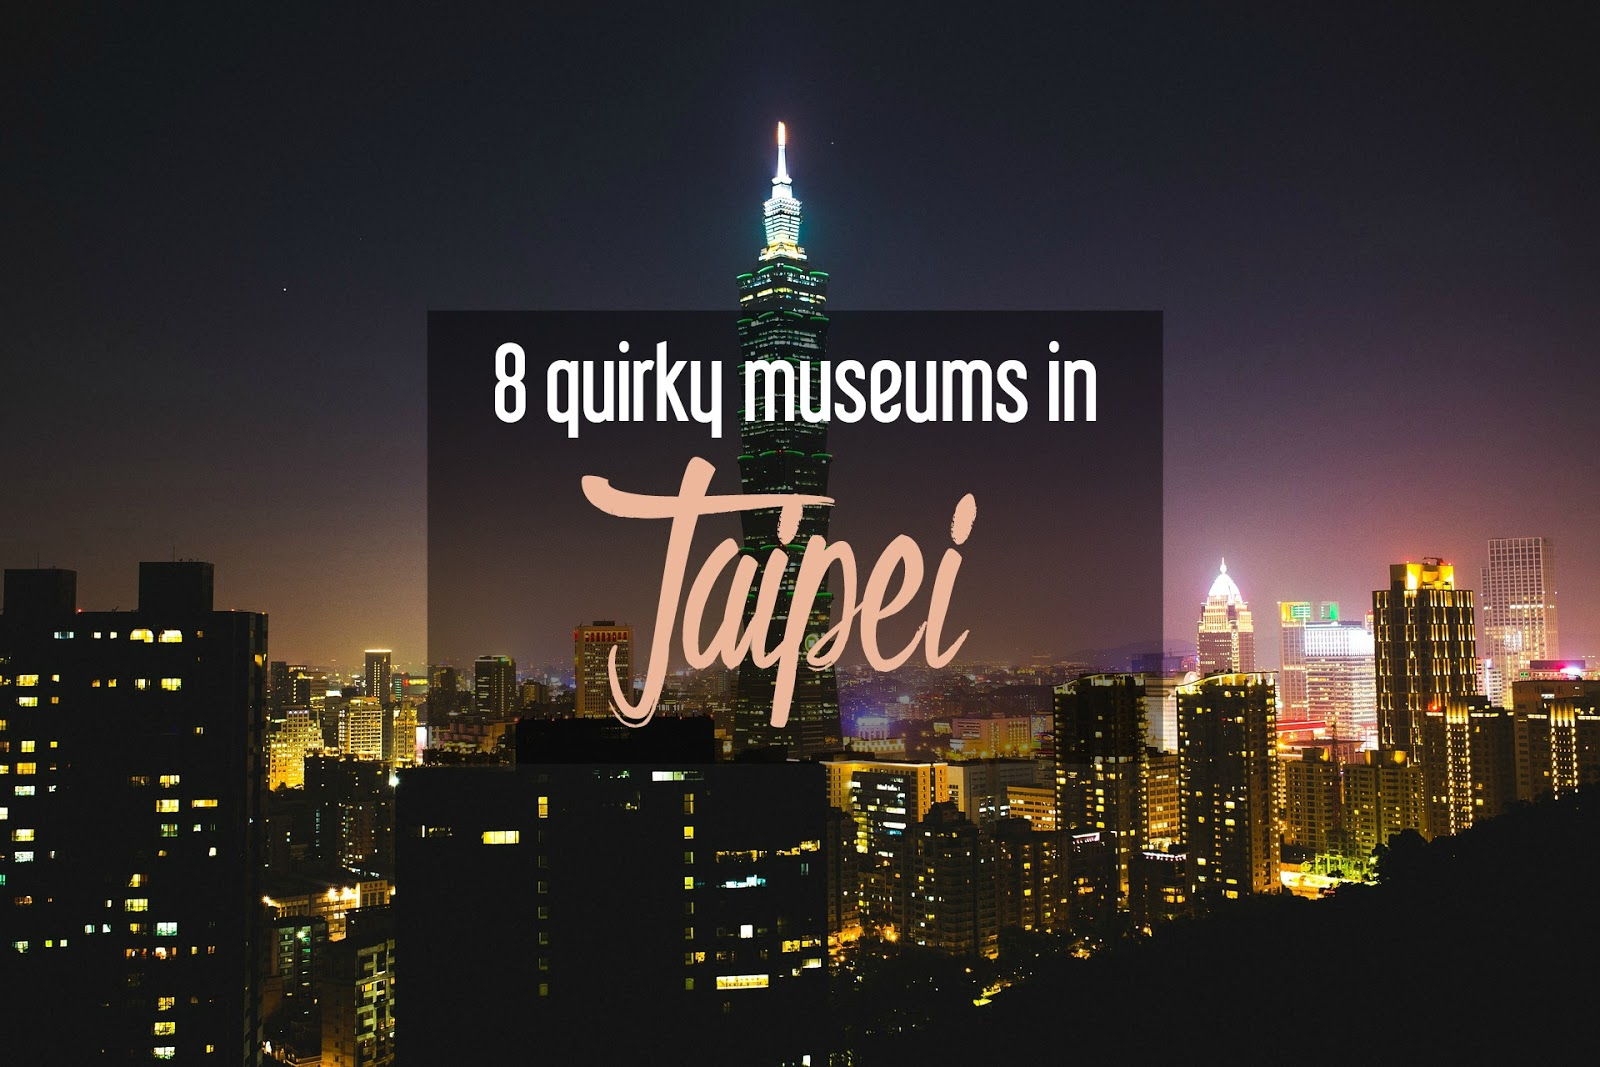 6 Quirky Museums in Taipei